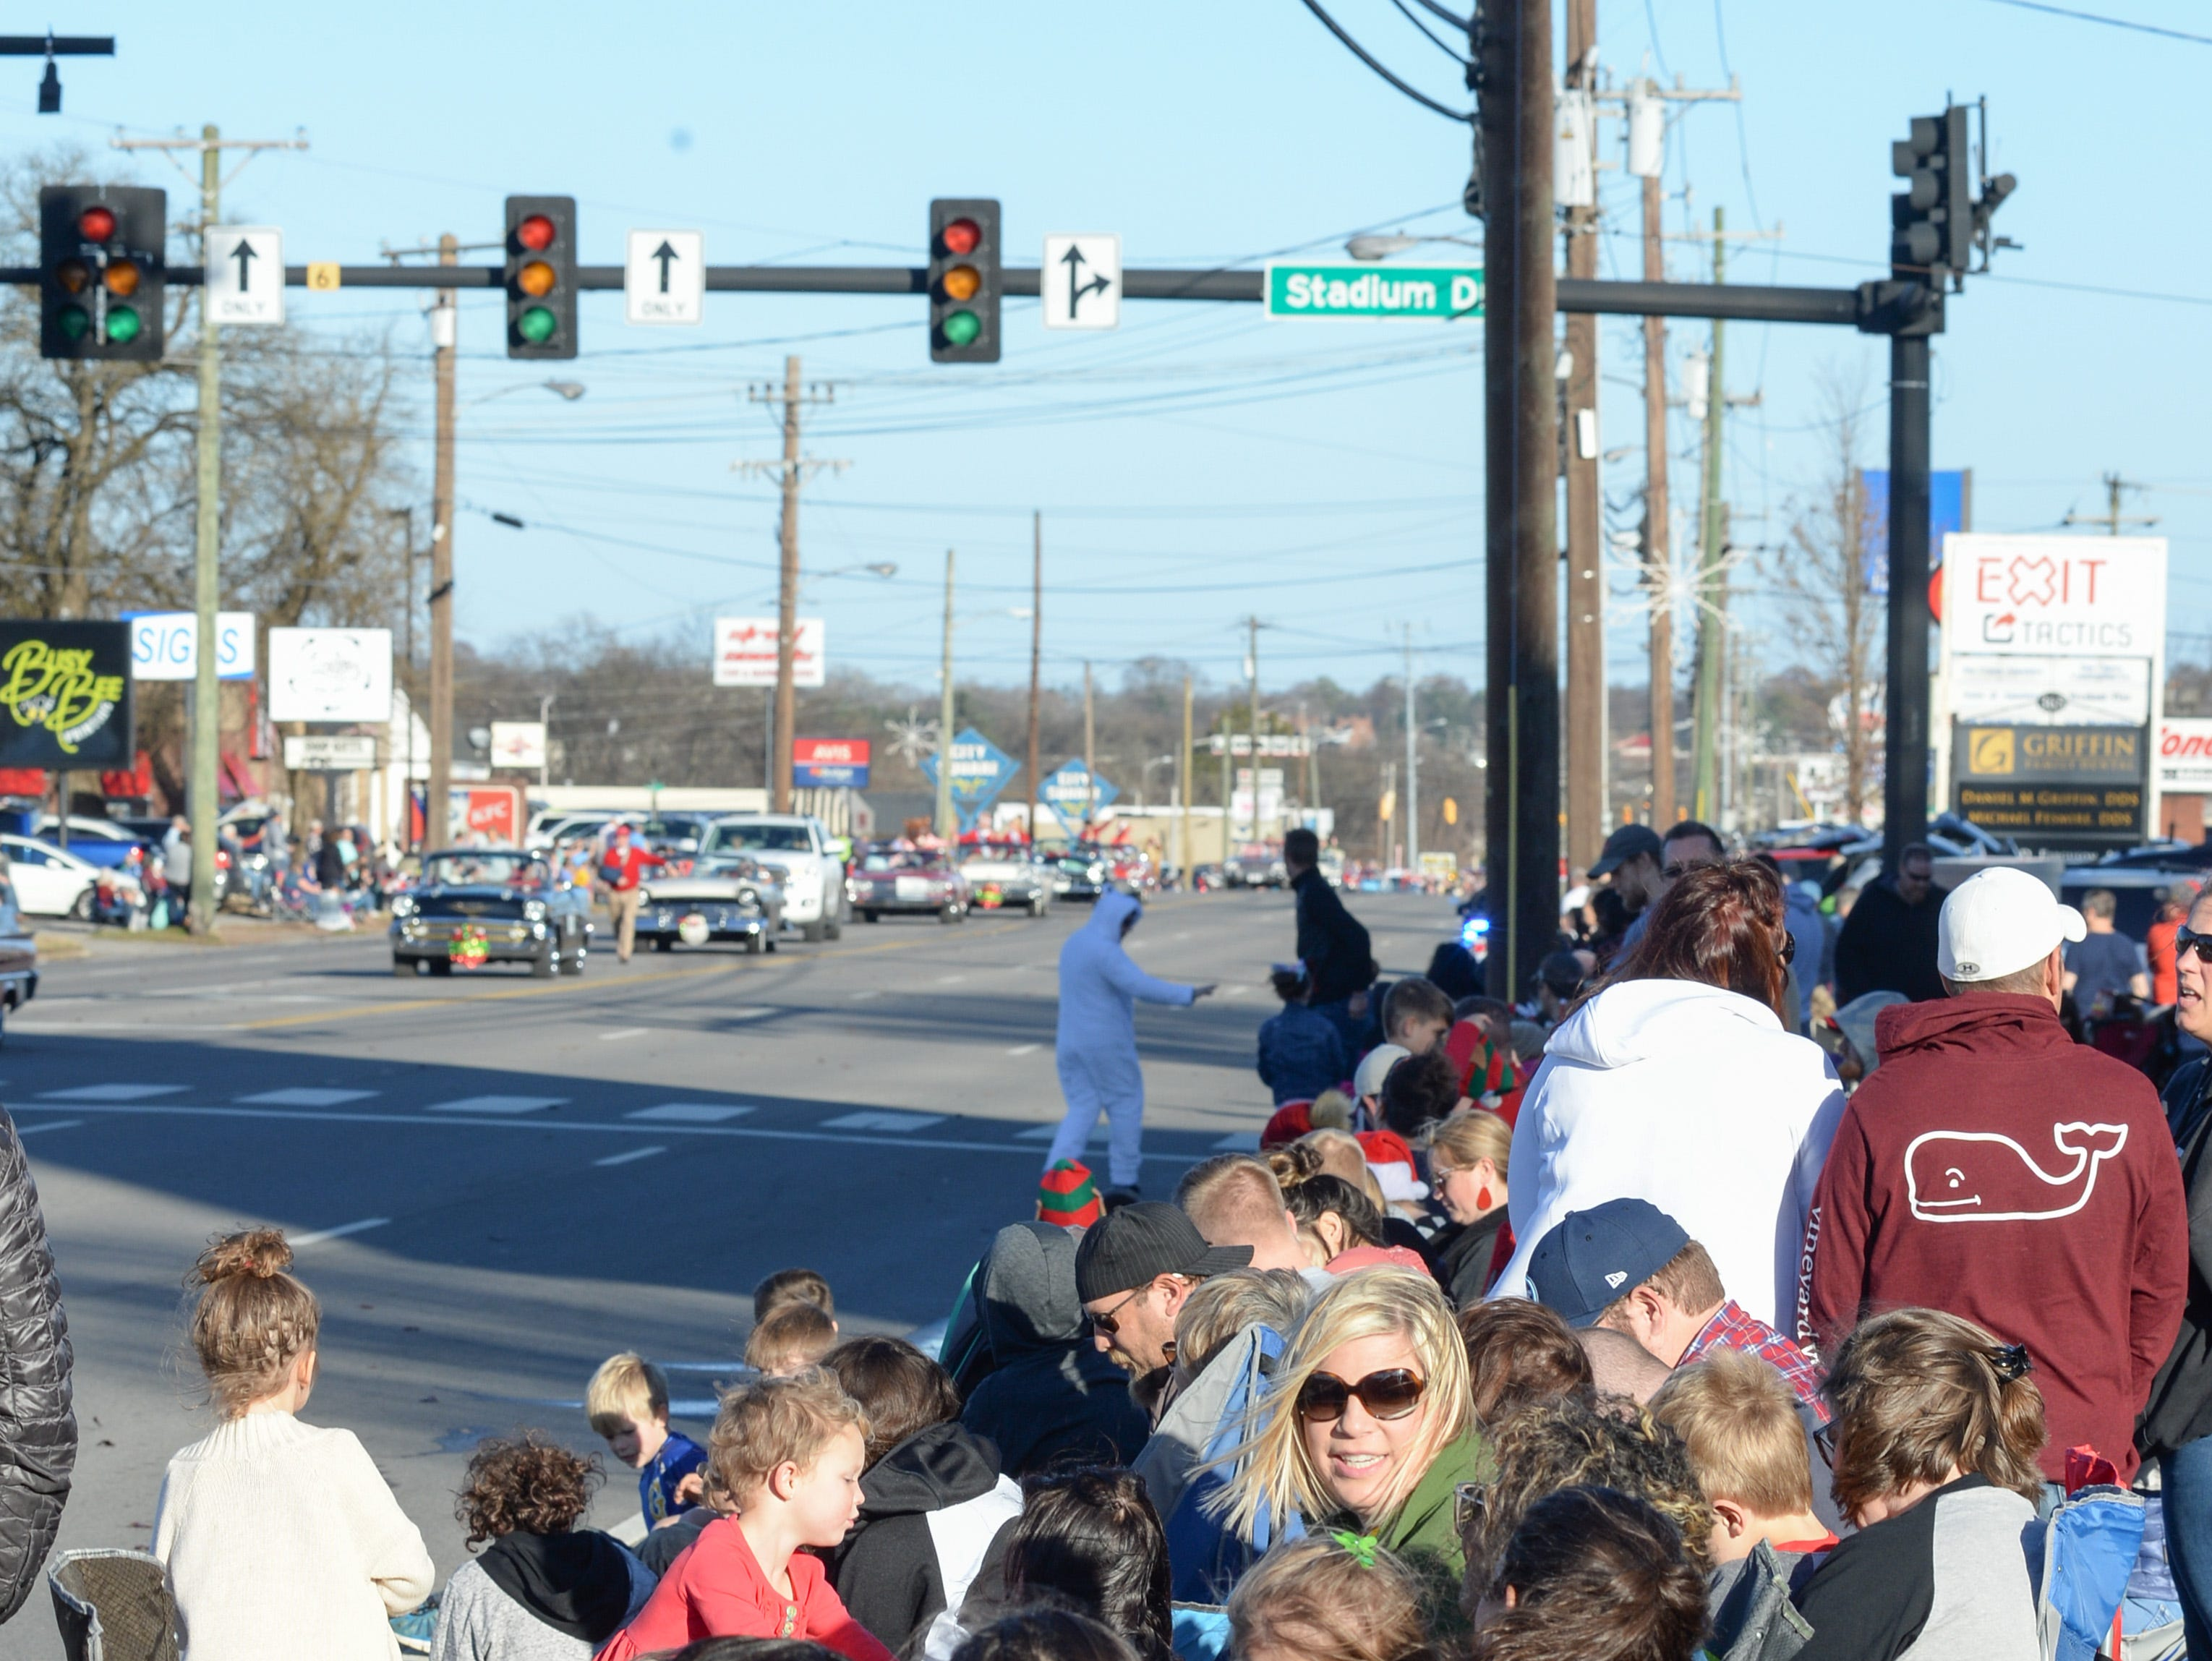 The Hendersonville Christmas Parade drew a large crowd on Sunday, Dec. 2.